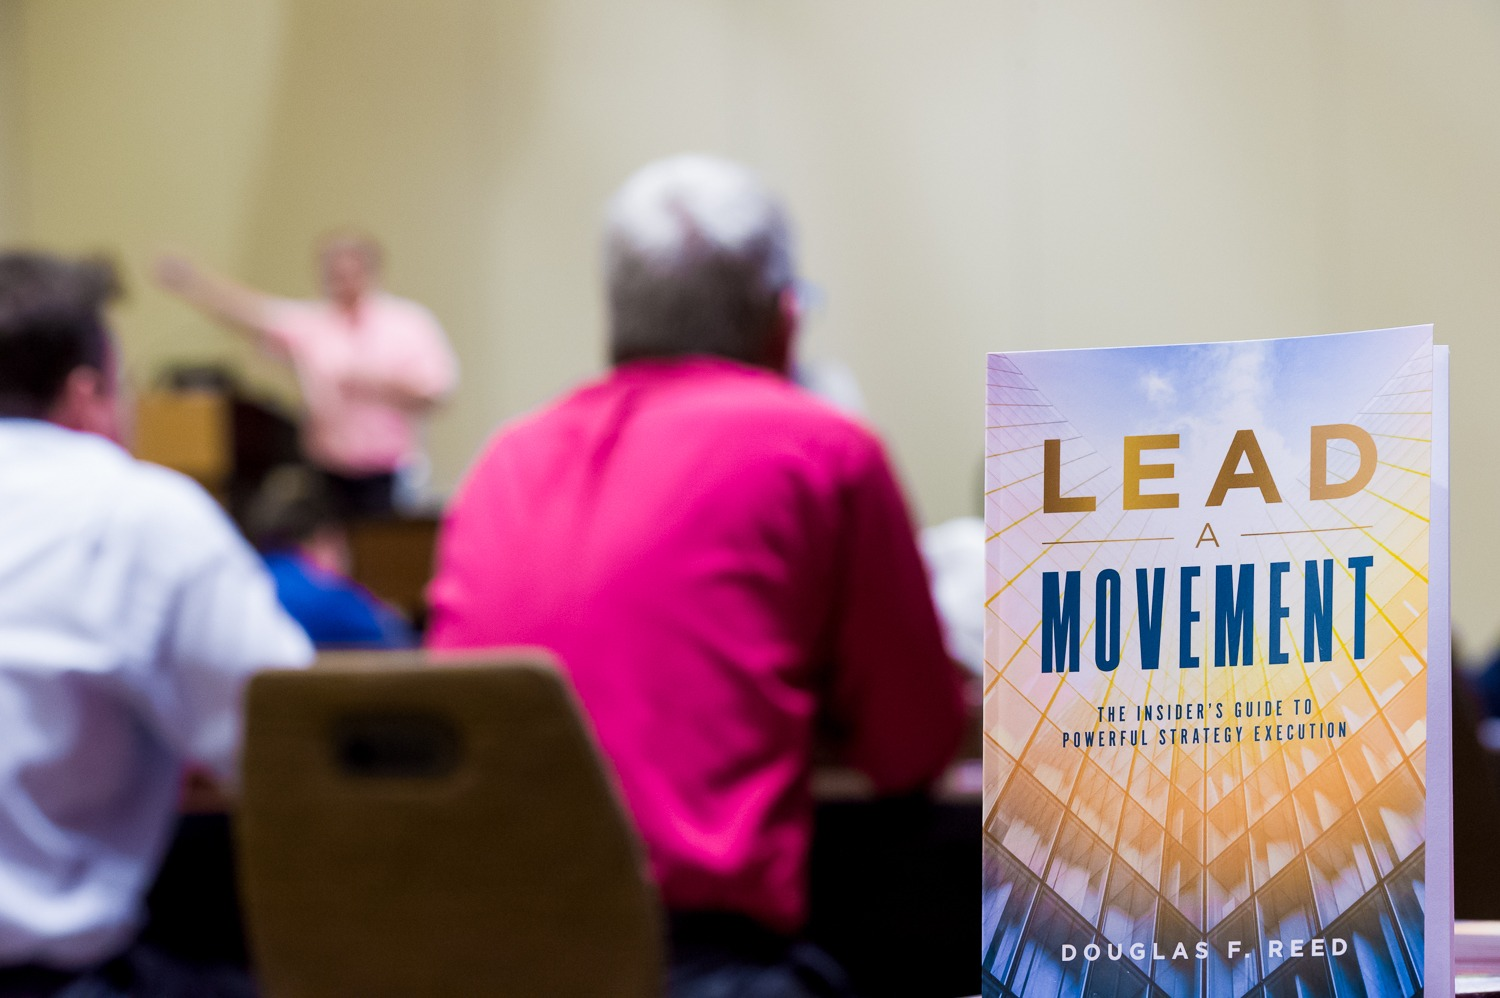 Lead A Movement: The Insider's Guide To Powerful Strategy Execution